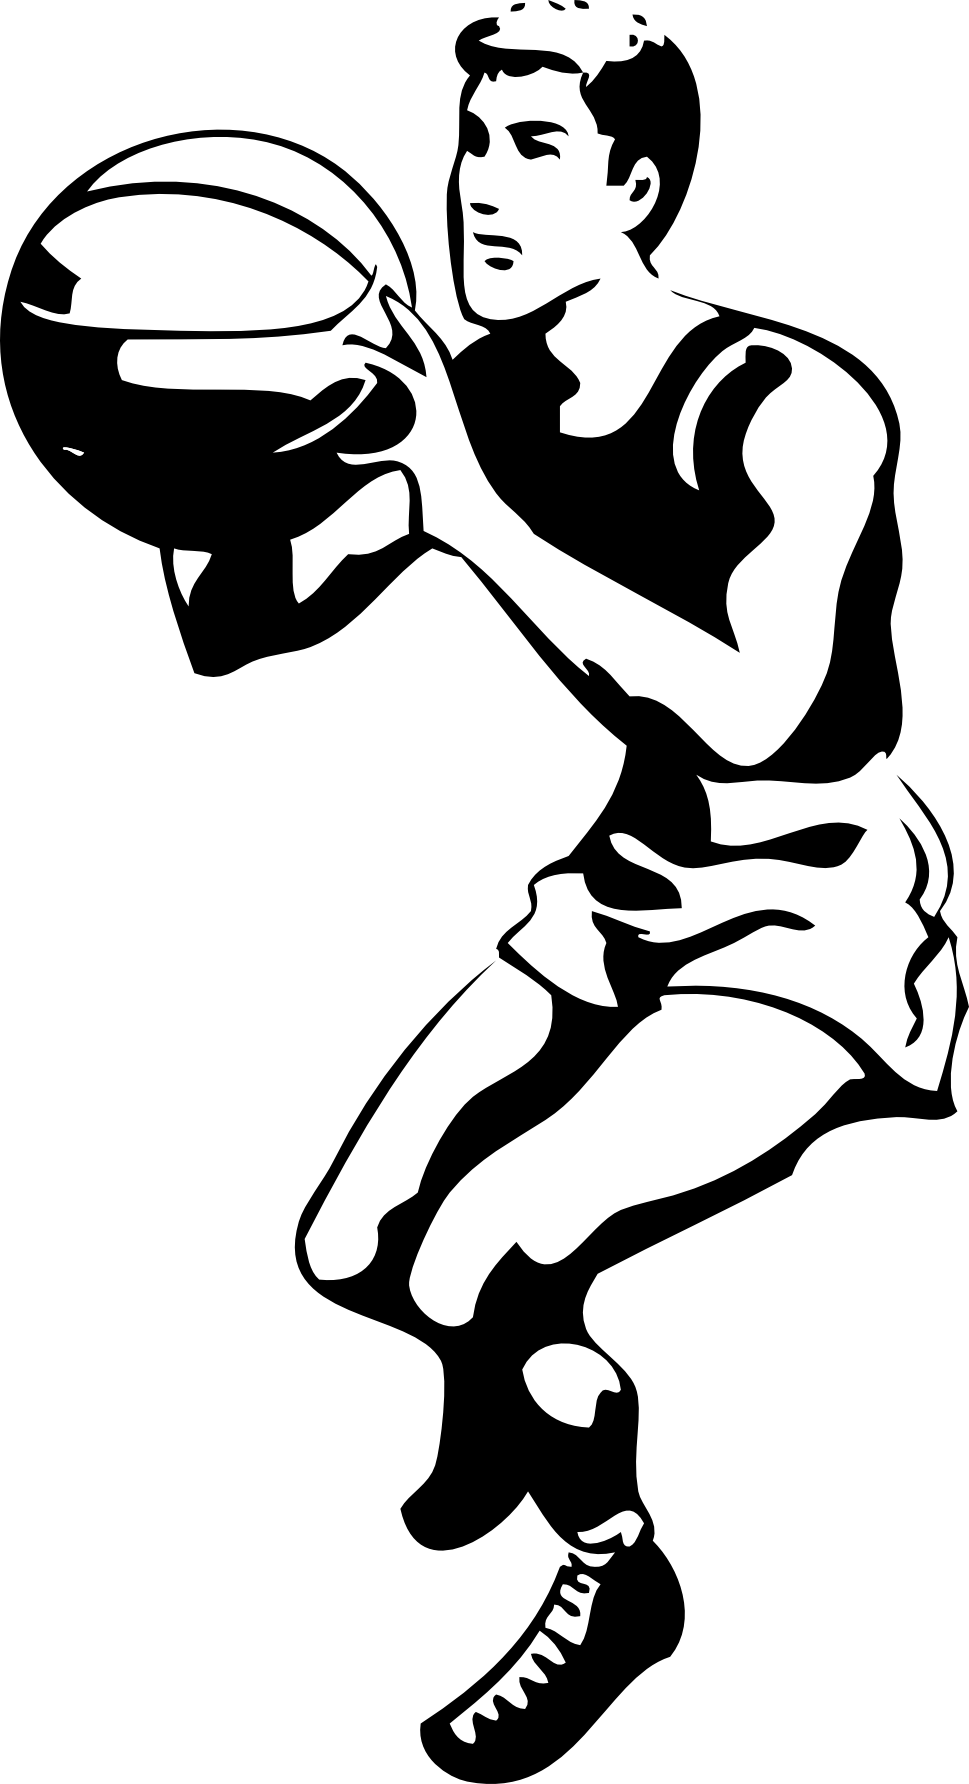 Scooter clipart black and white. Basketball images image